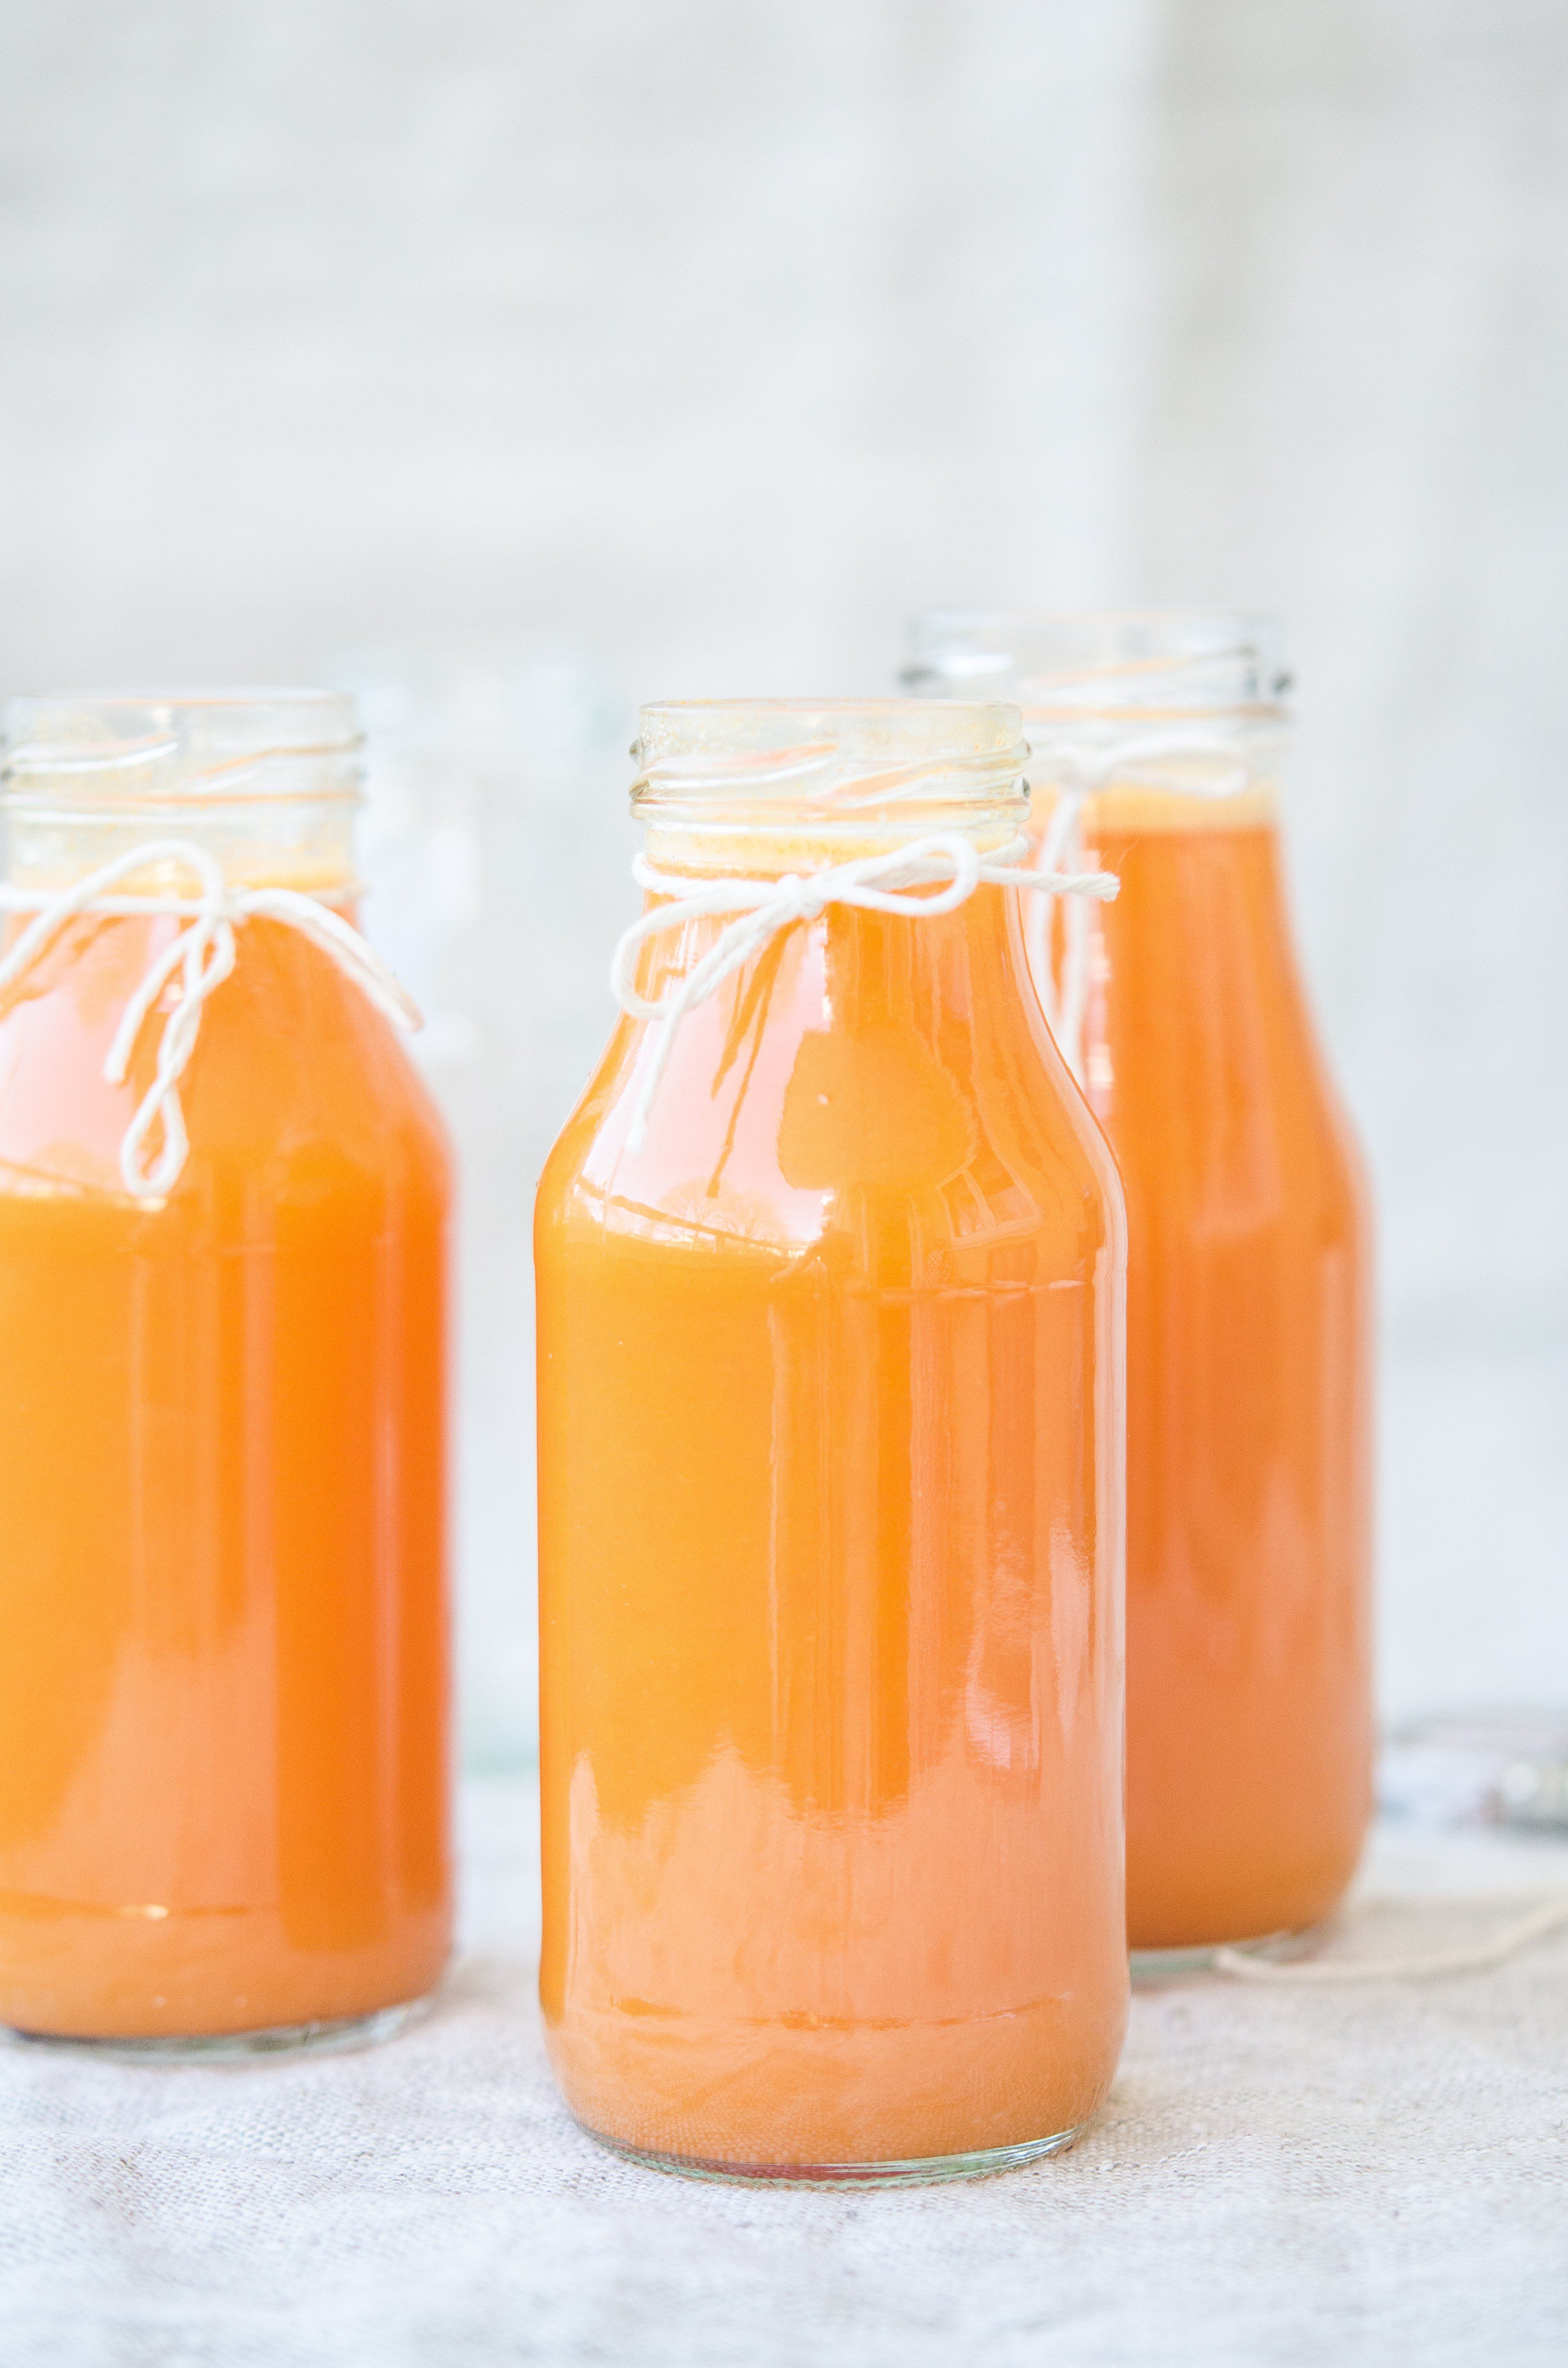 Incredible Ginger & Carrot Juice for Easter